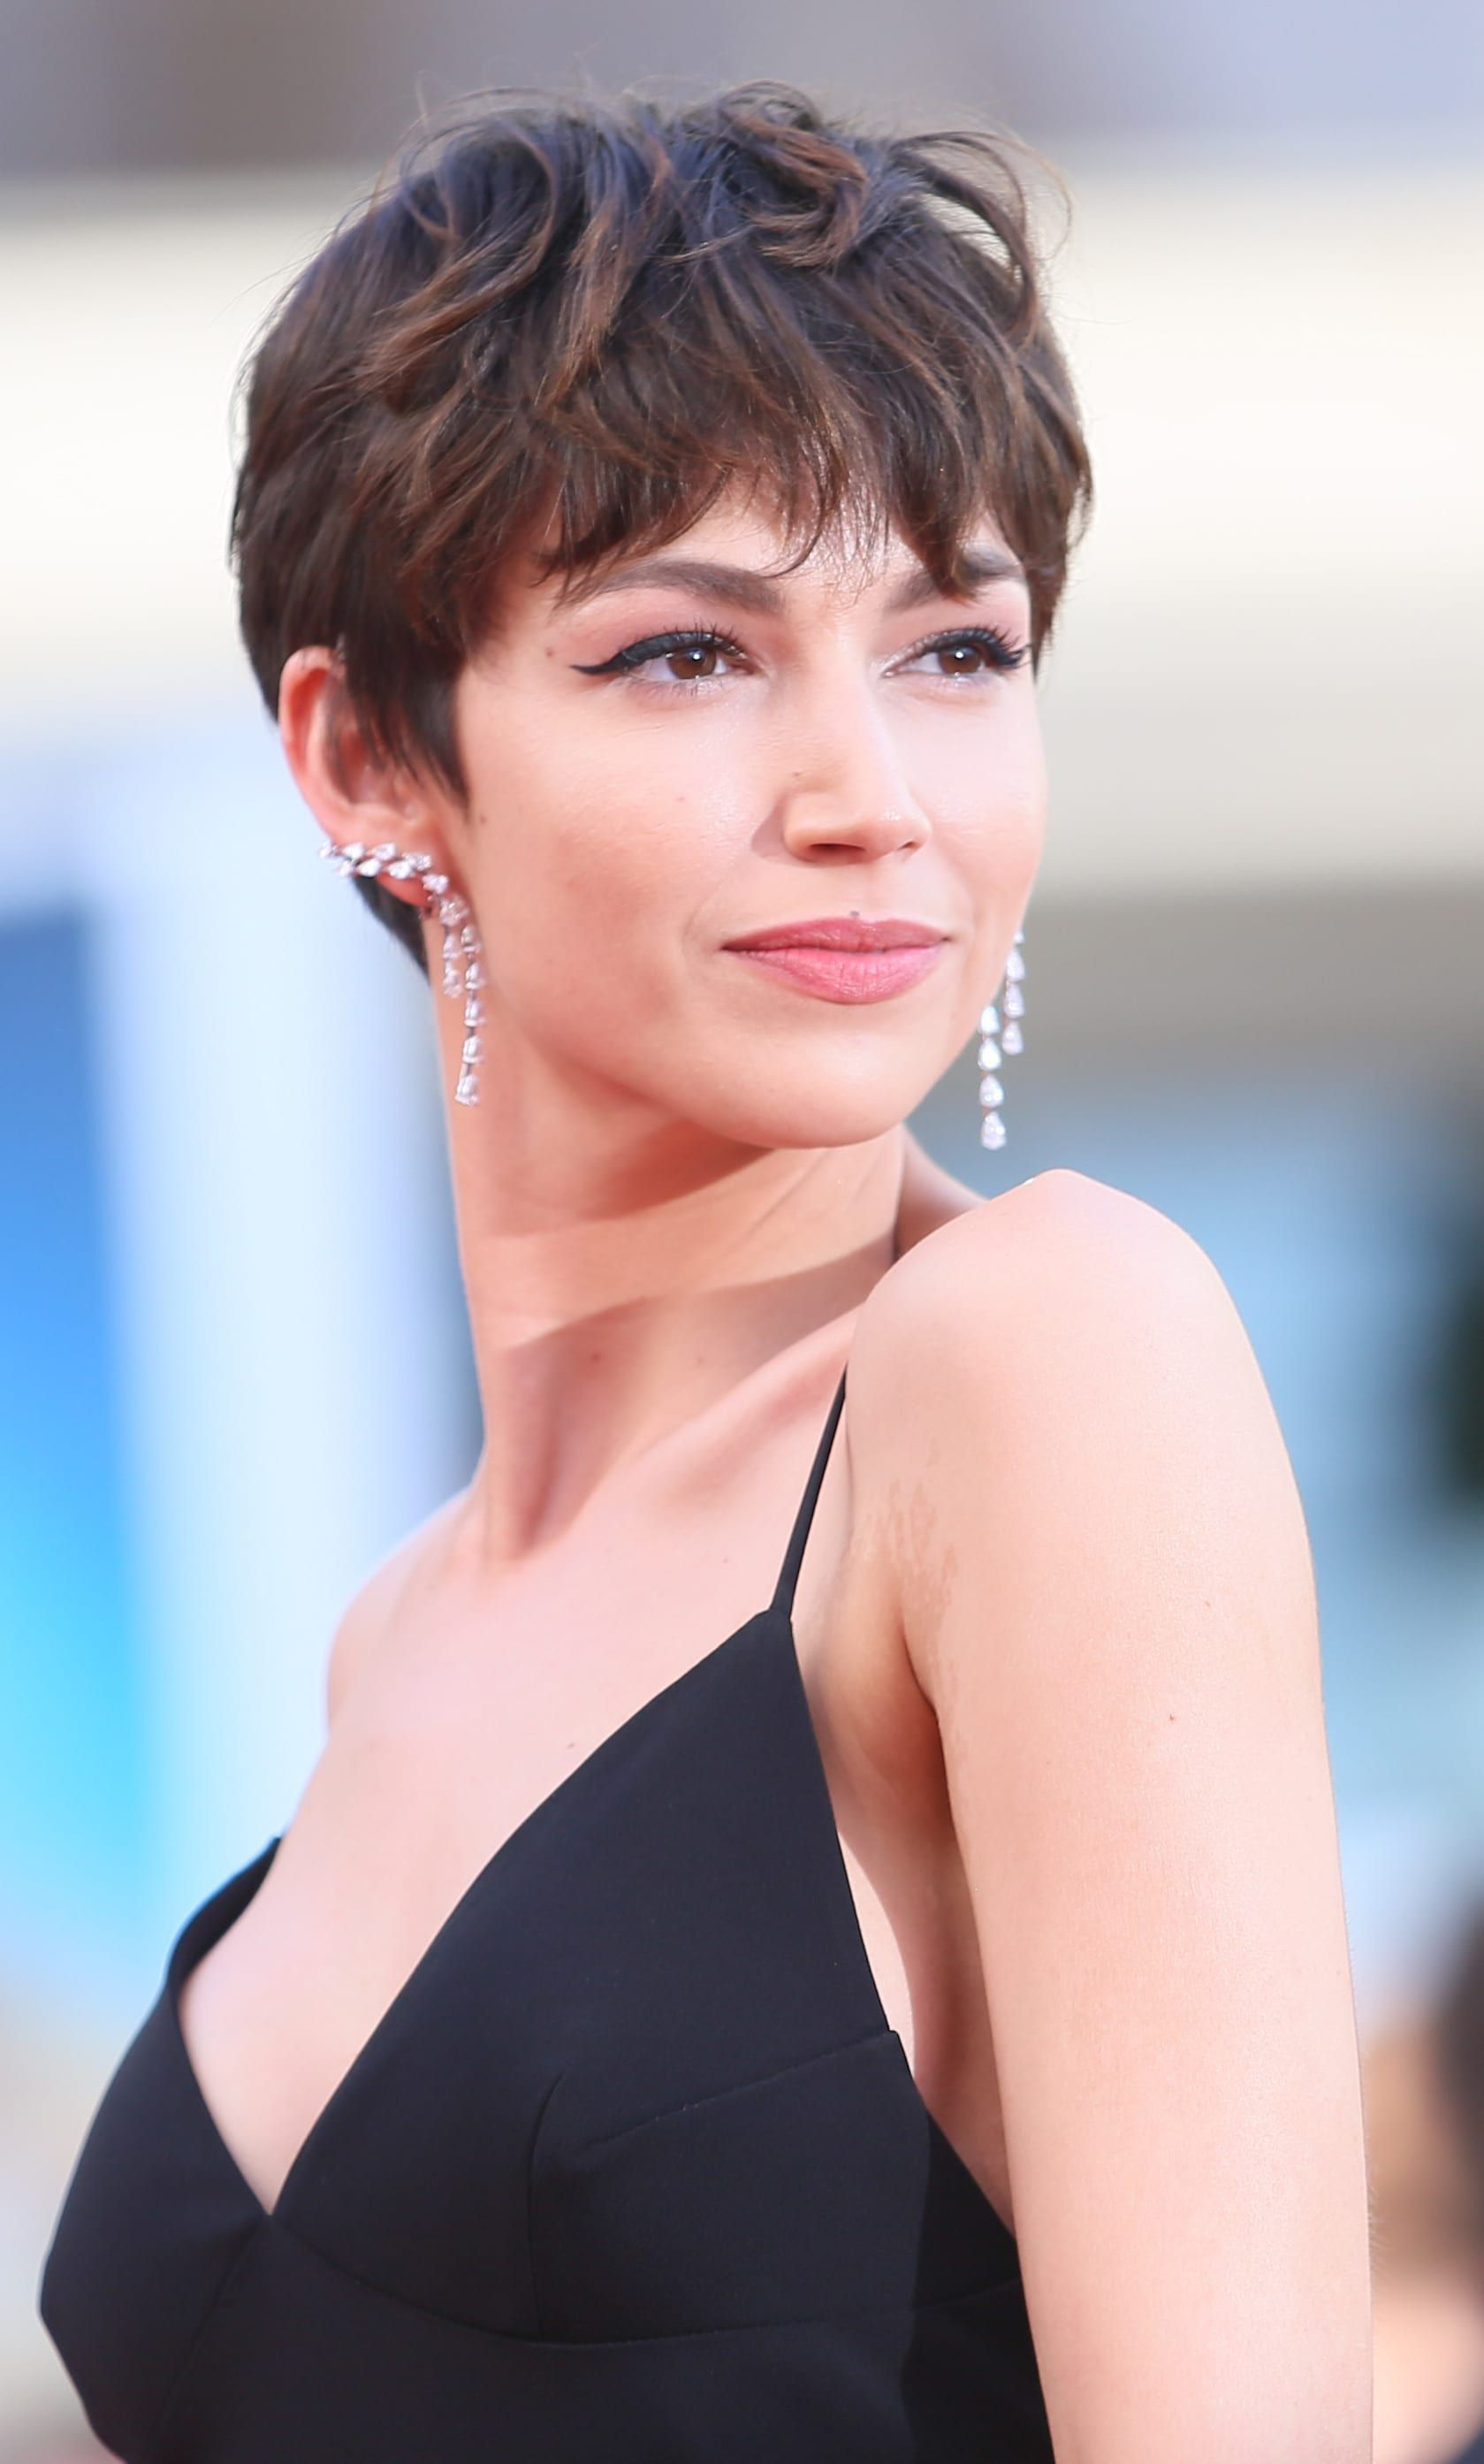 30 very short pixie haircuts for women short hairstyles 30 latest short hairstyles for women for 2019 short